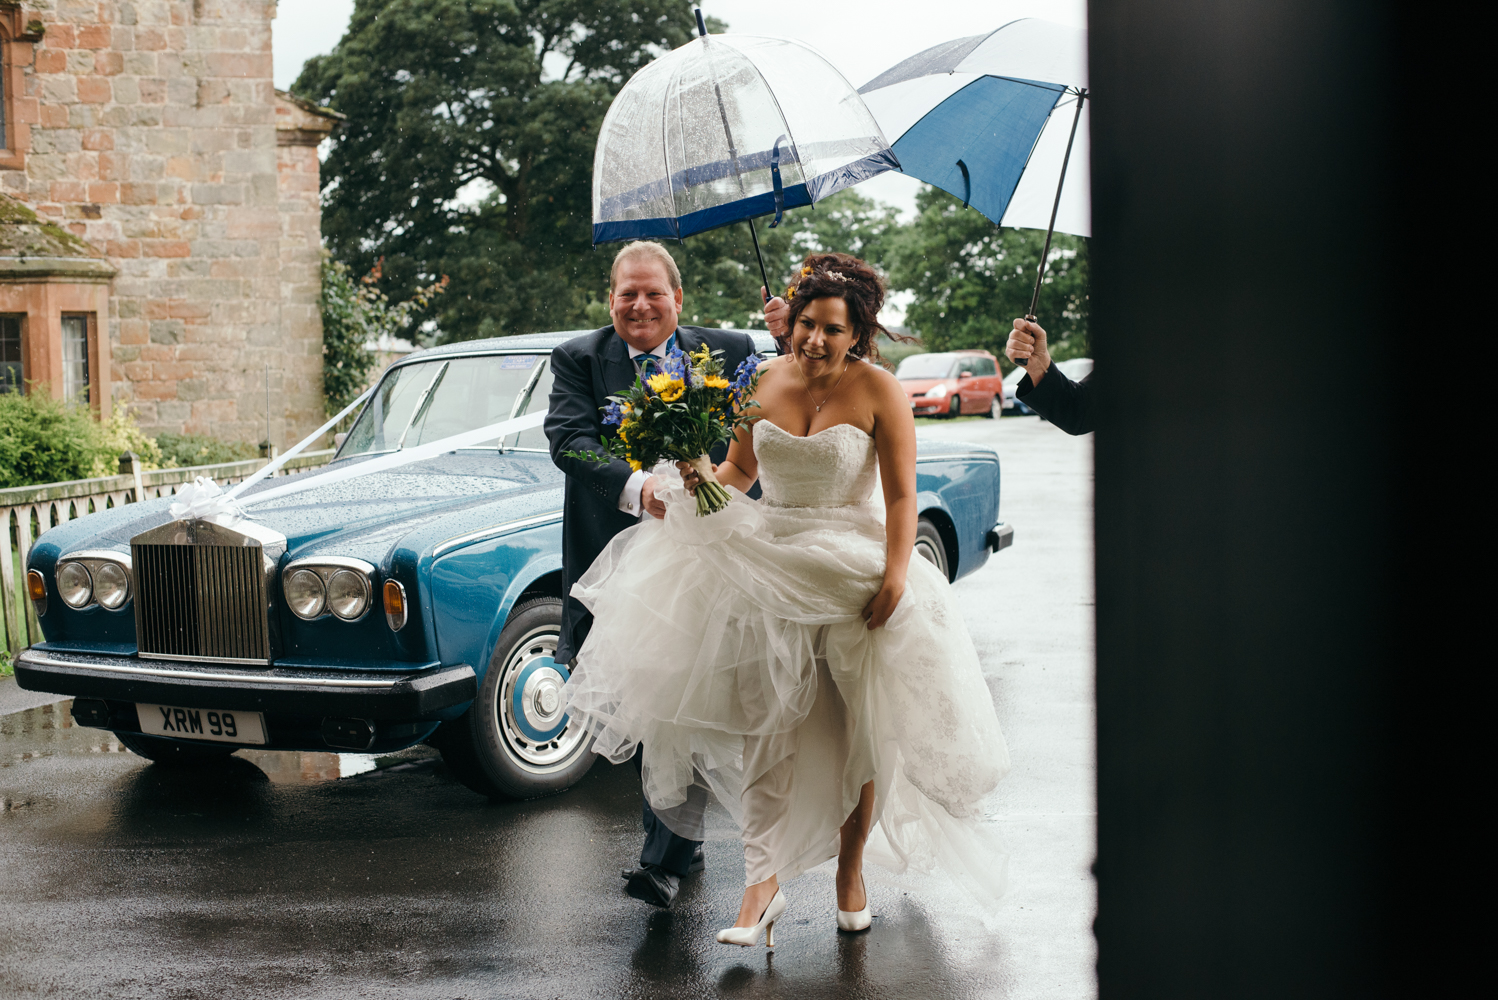 The bride braving the rotten weather arriving with her father